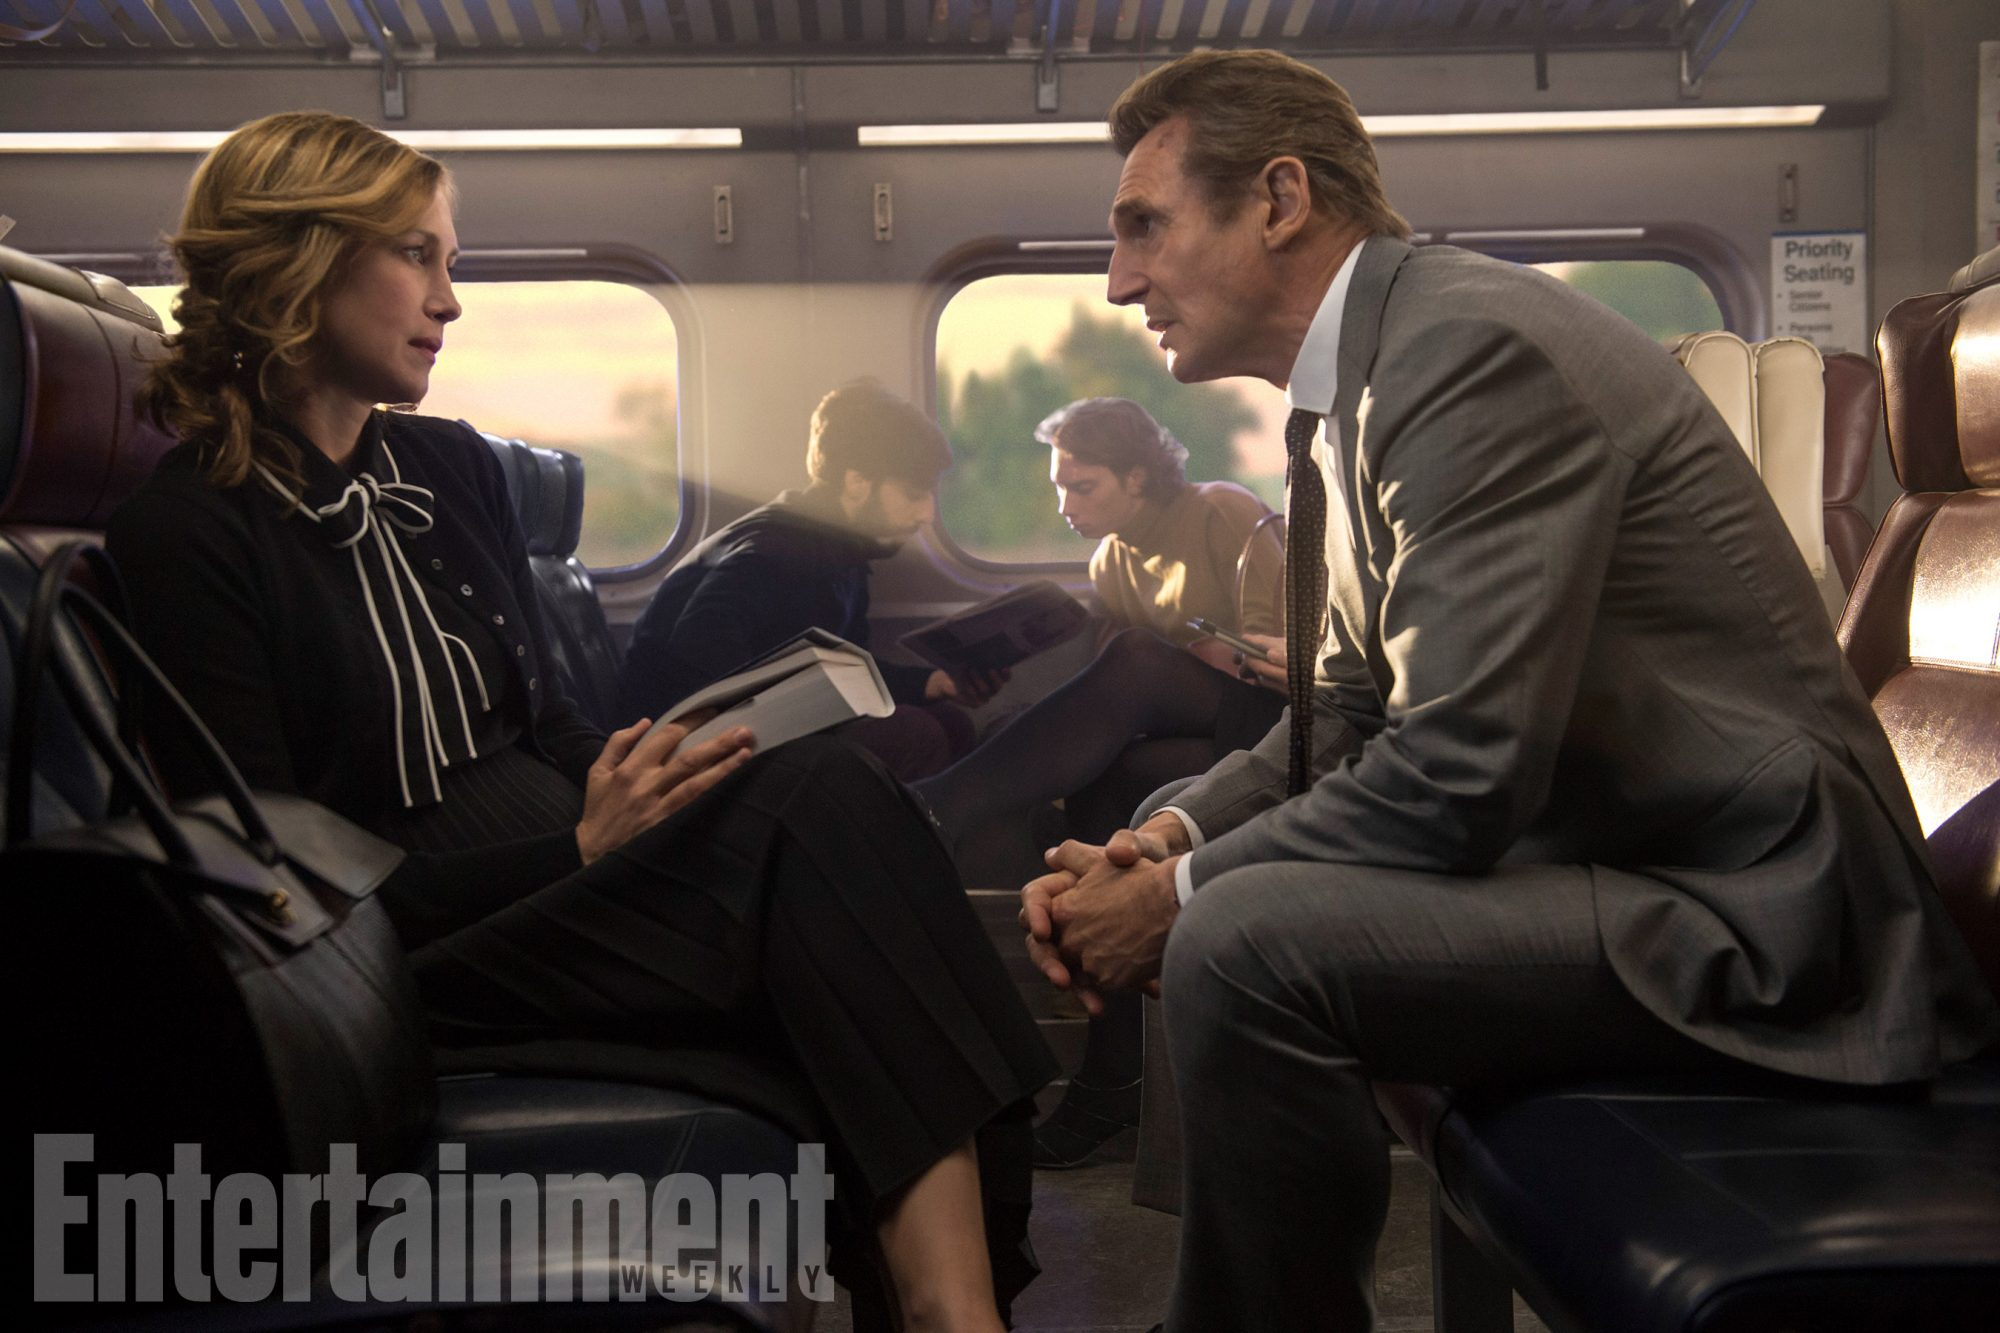 (WATERMARKED) The Commuter